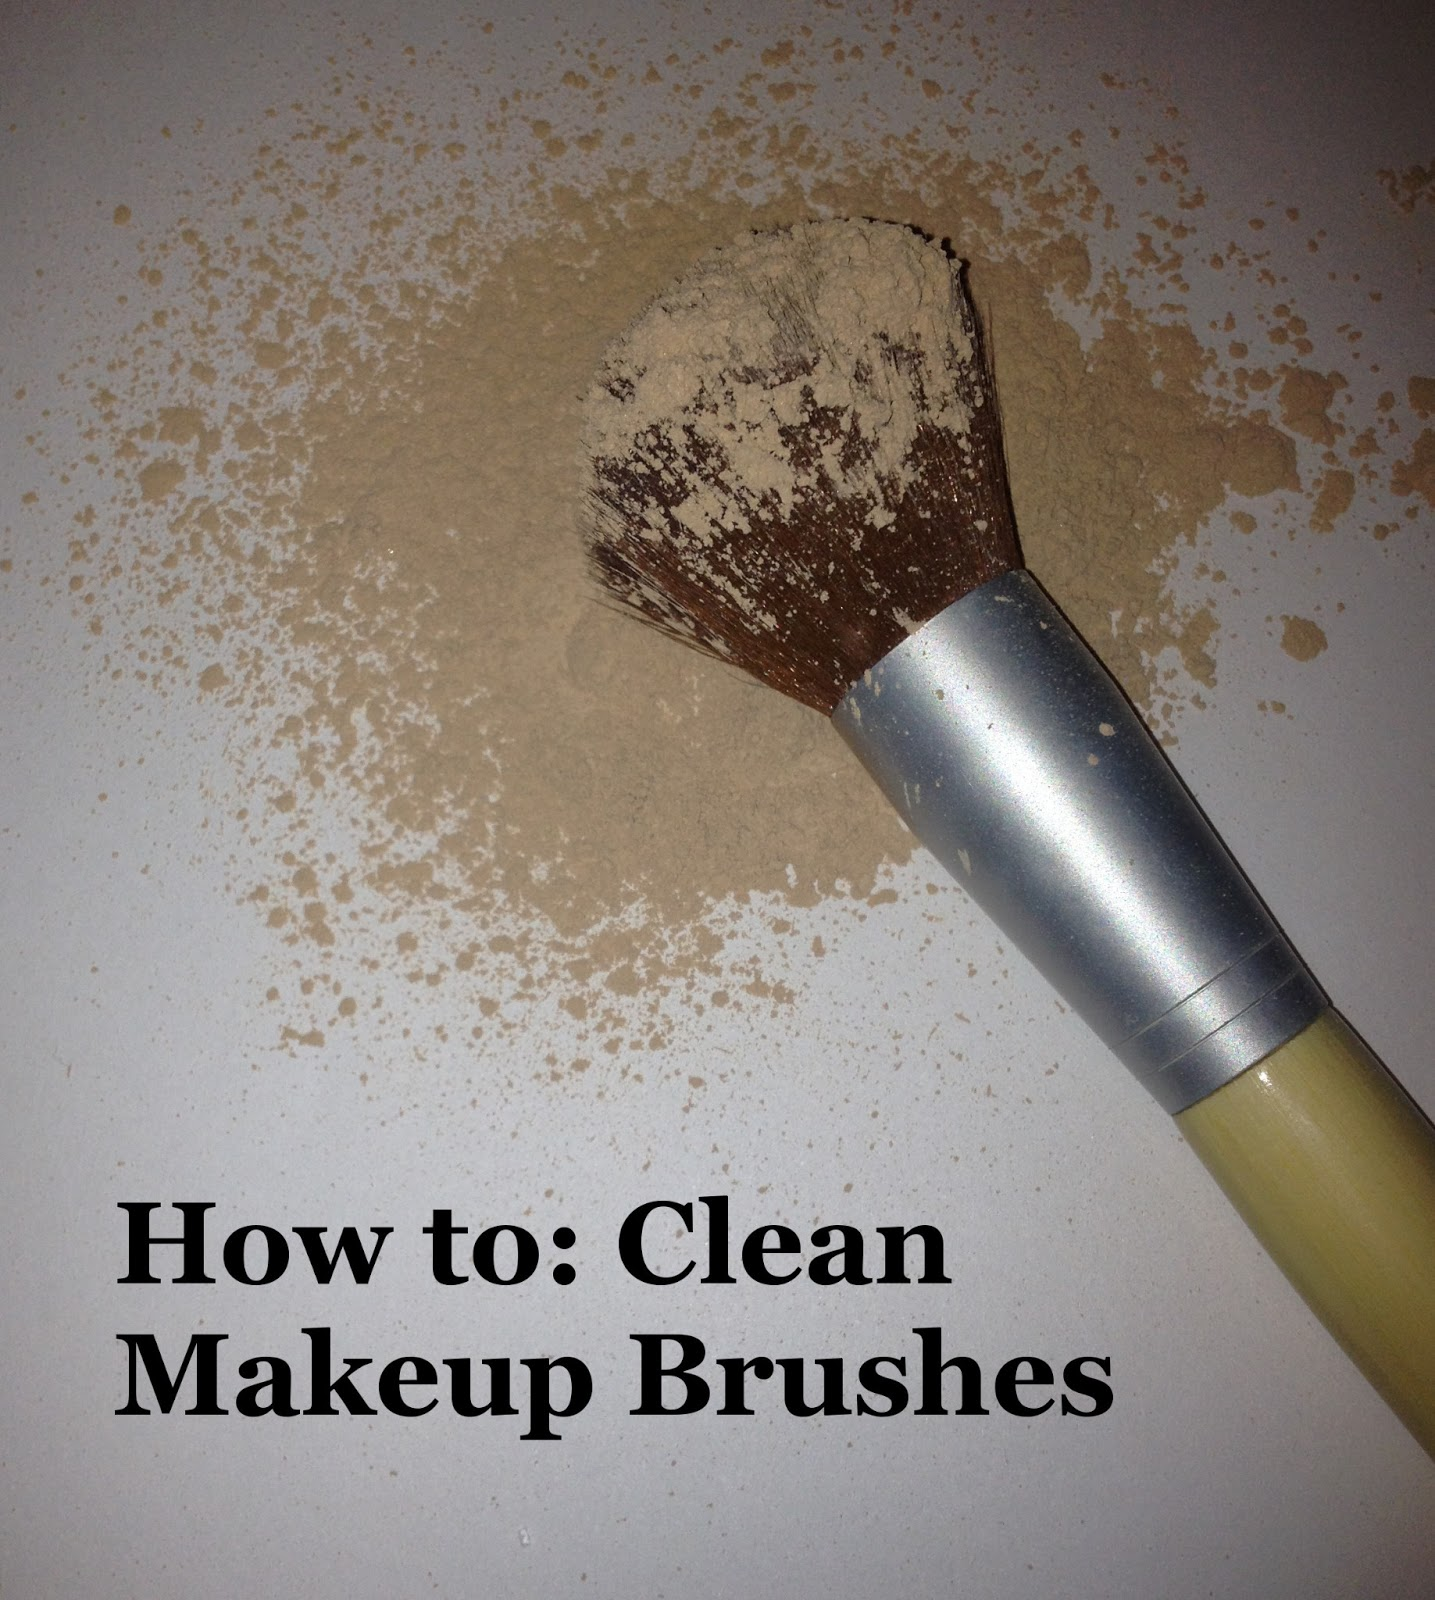 How to sanitize makeup brushes